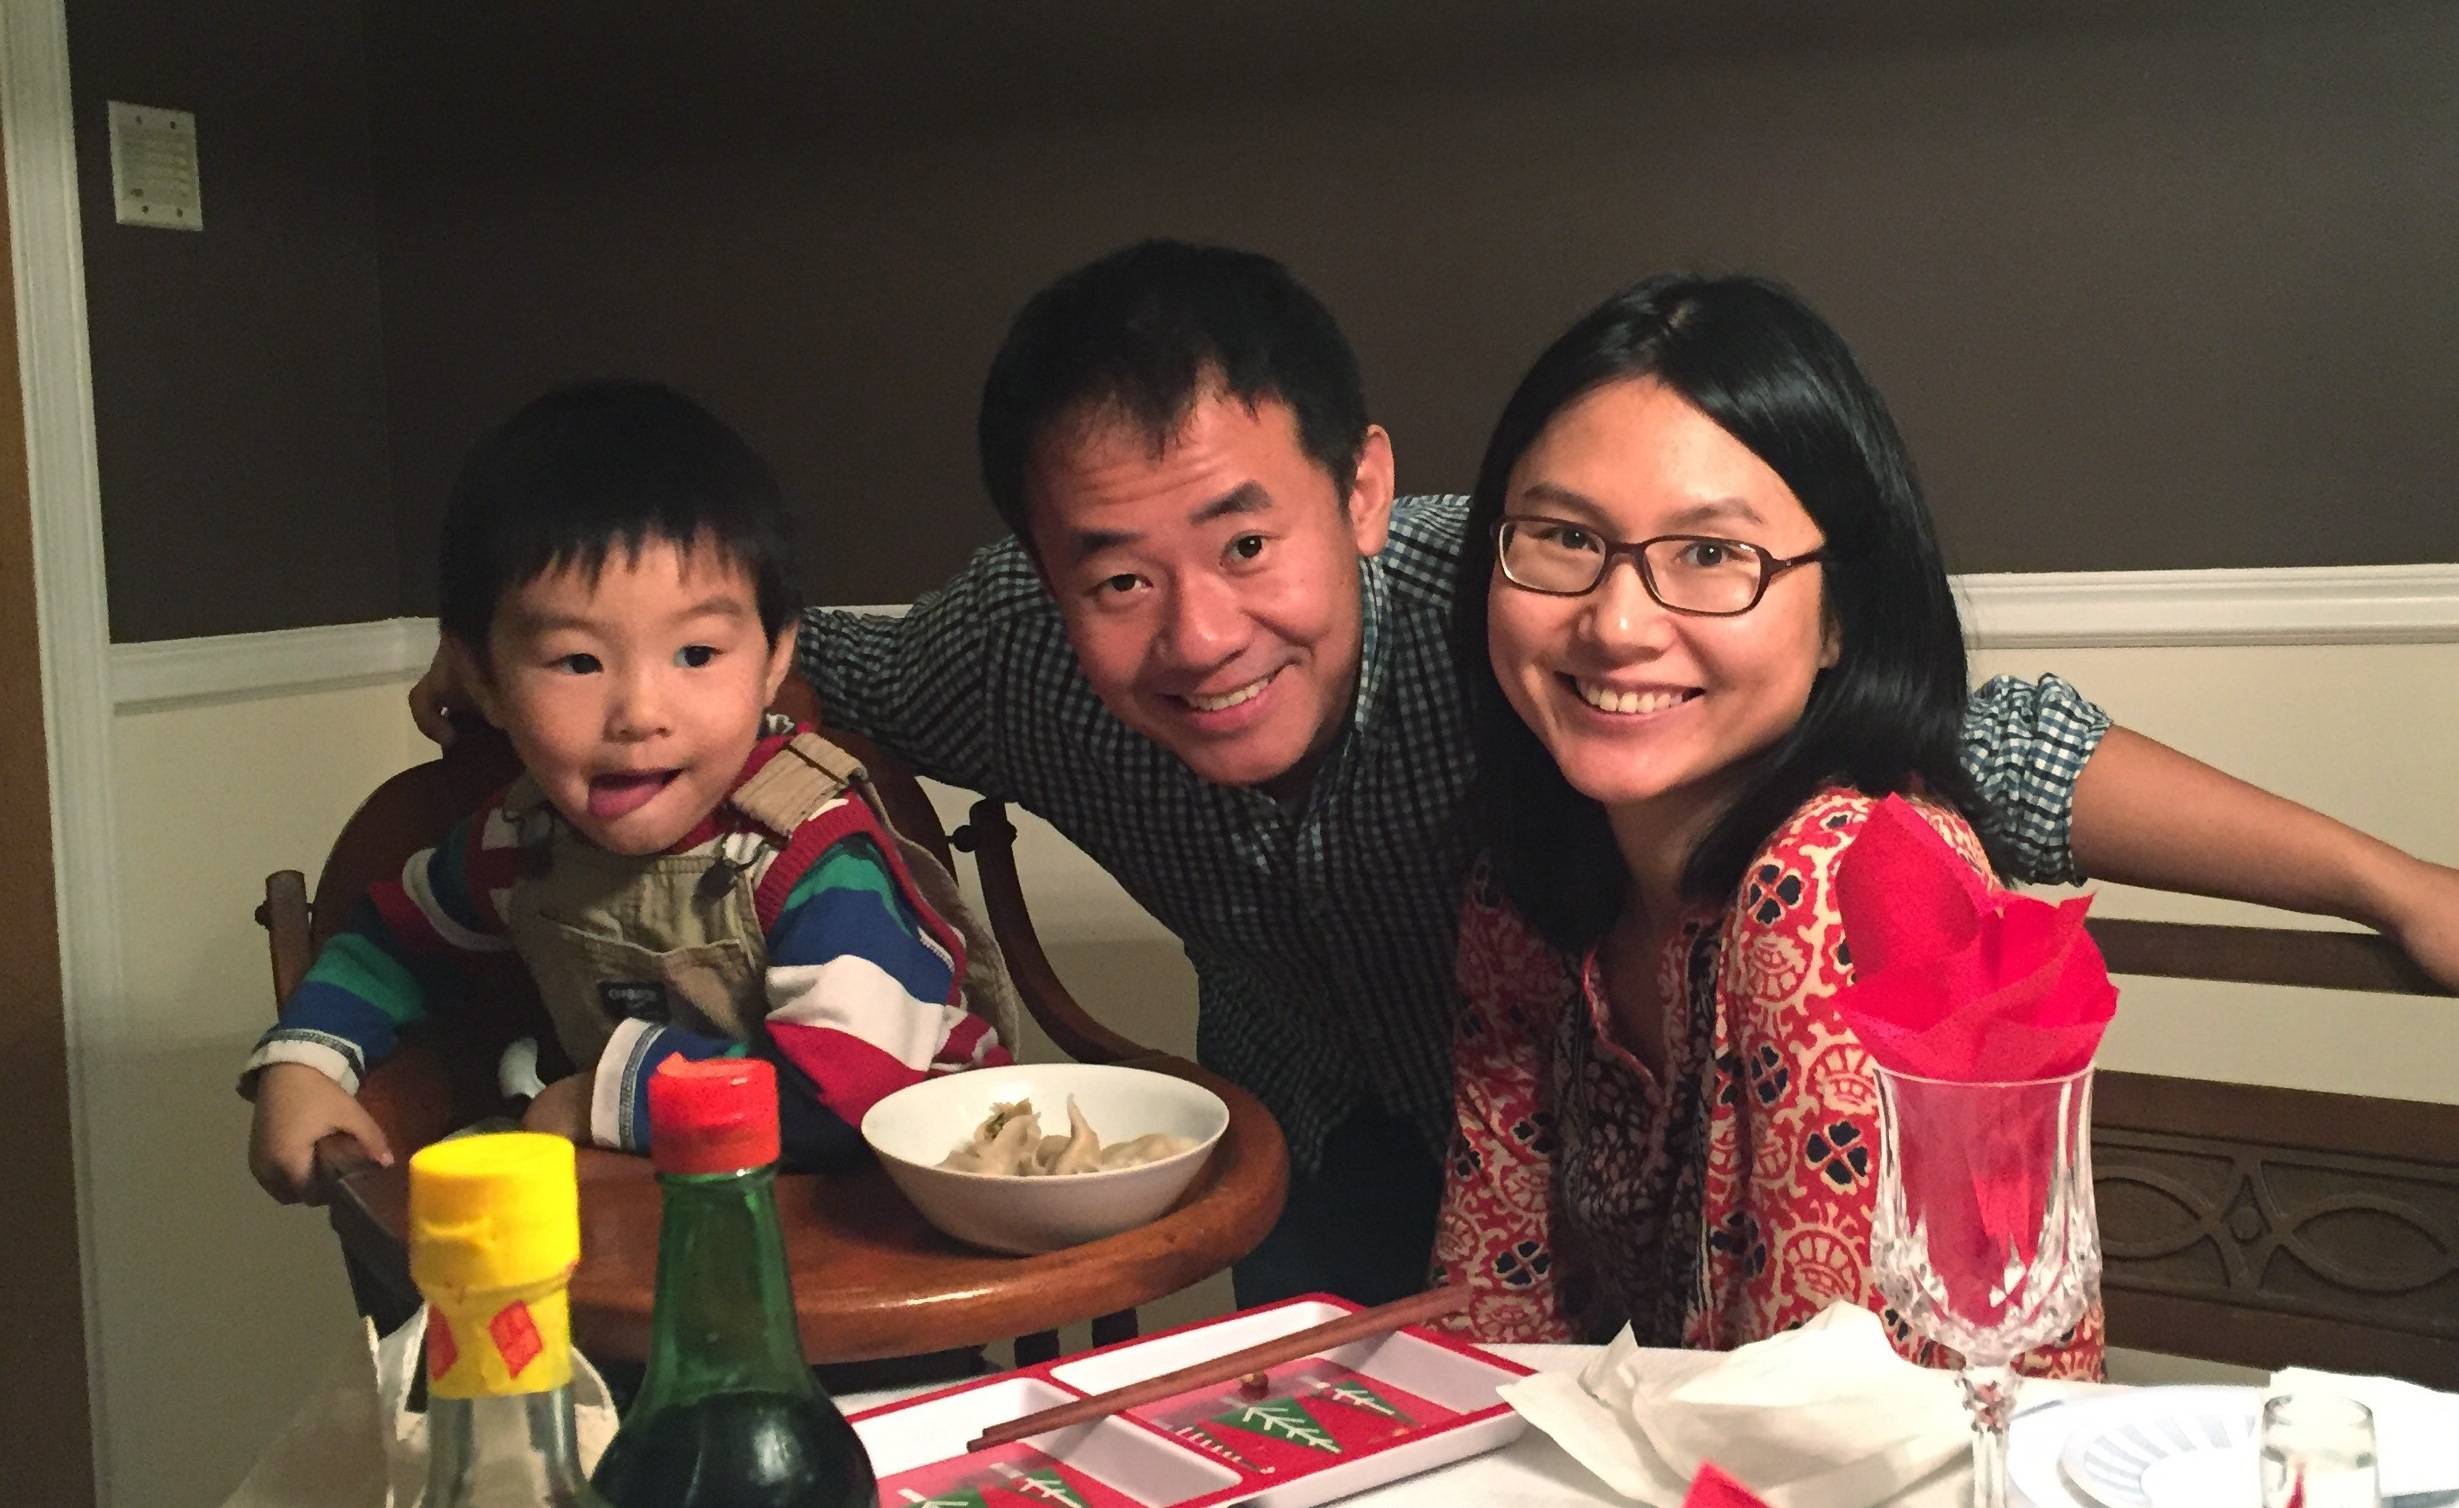 Princeton graduate student Xiyue Wang, shown here with his wife and their young son before he was detained in Iran in 2016. Photo courtesy of Hua Qu.